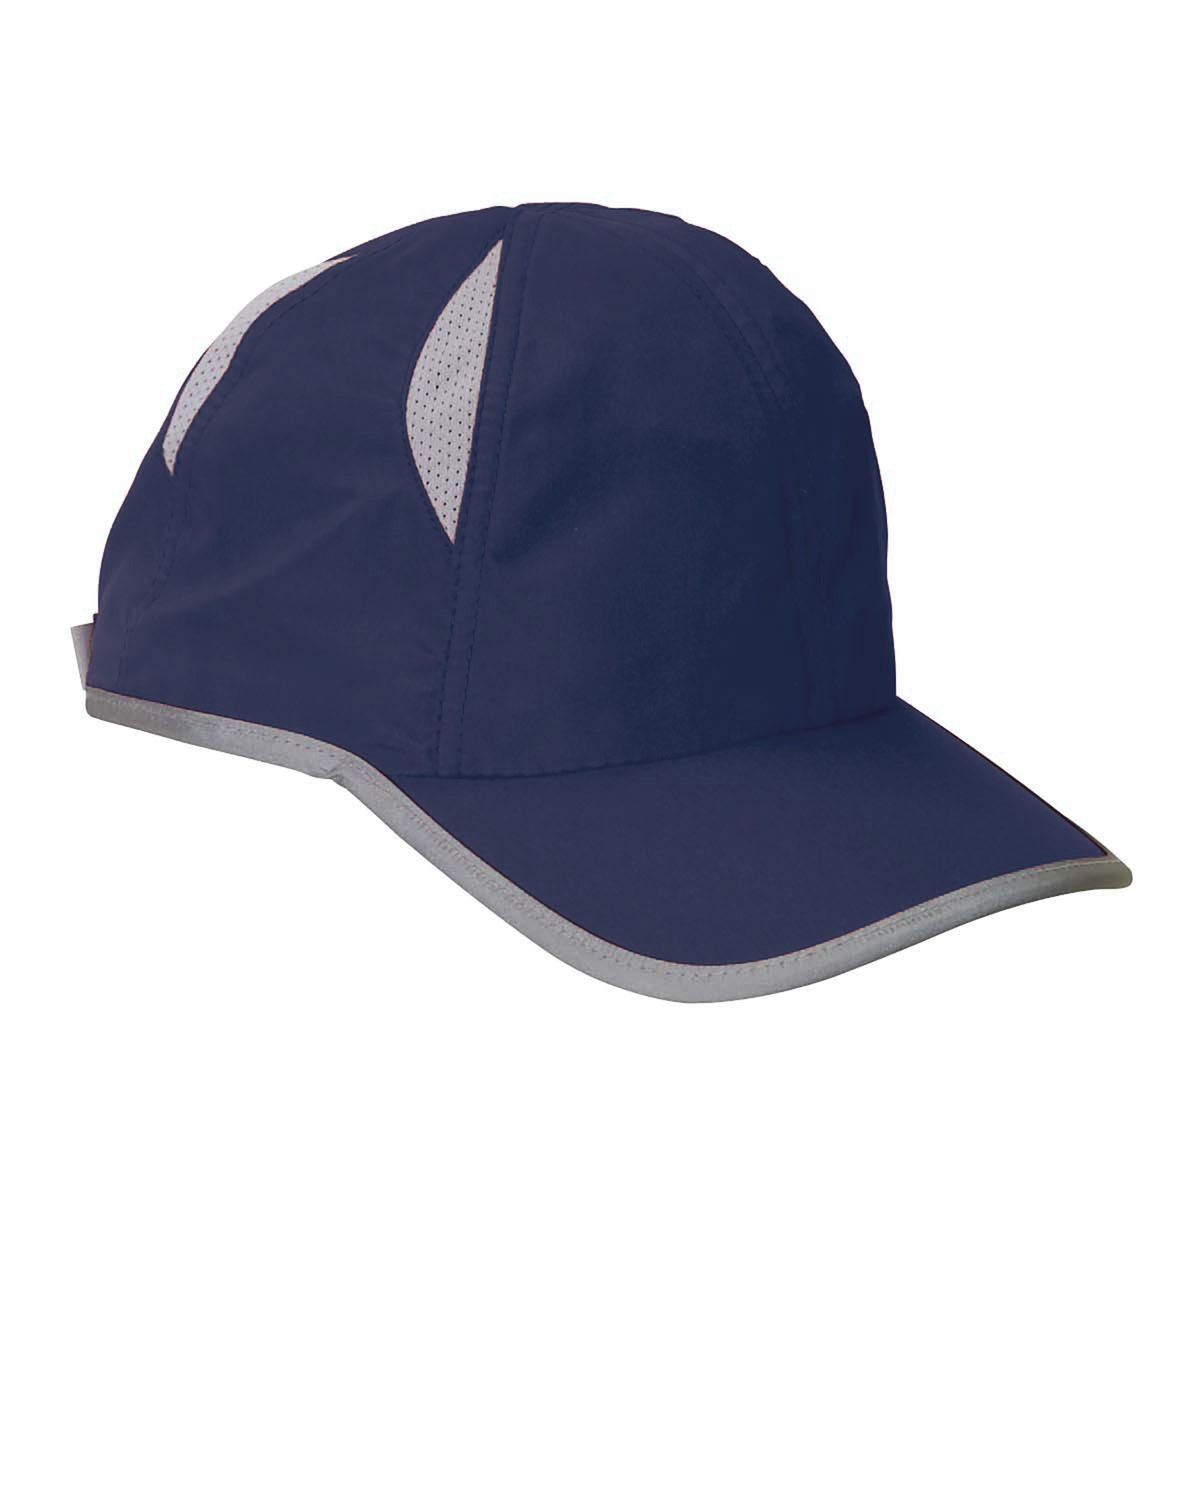 Big Accessories BA514 - Performance Cap